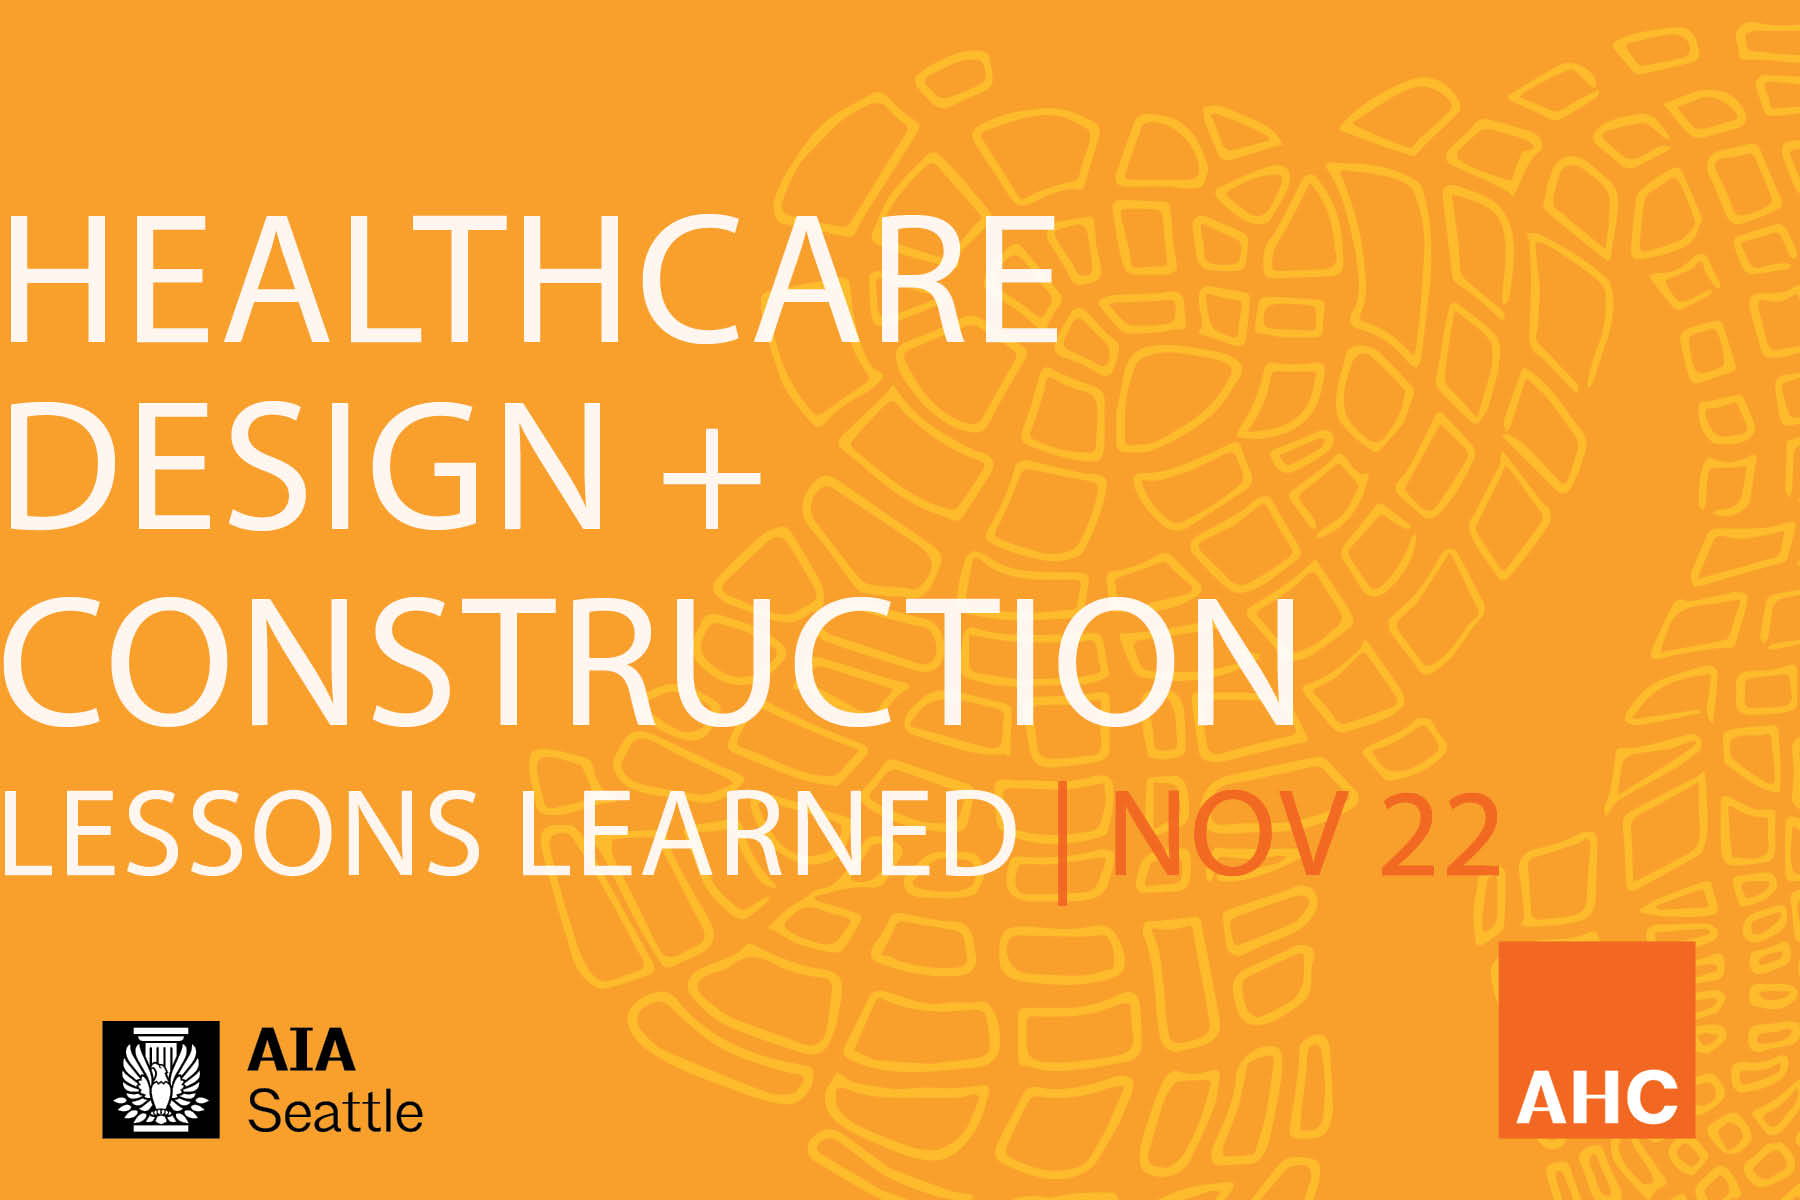 This page is intended only for participants of Architecture for Health Committee's Fall 2019 forum Healthcare Design & Construction - Lessons Learned.